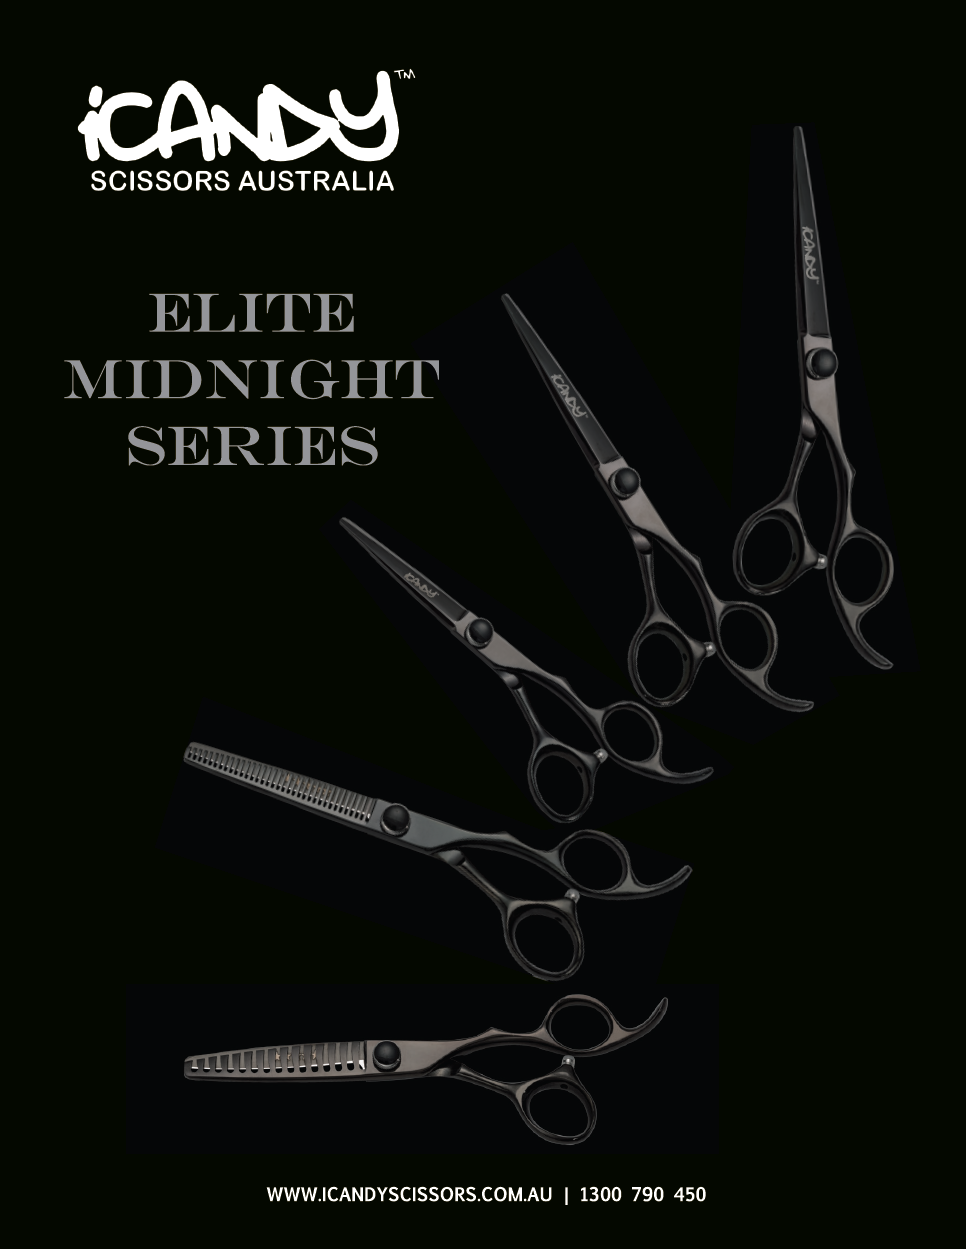 iCandy Elite Midnight Series Scissors Collection